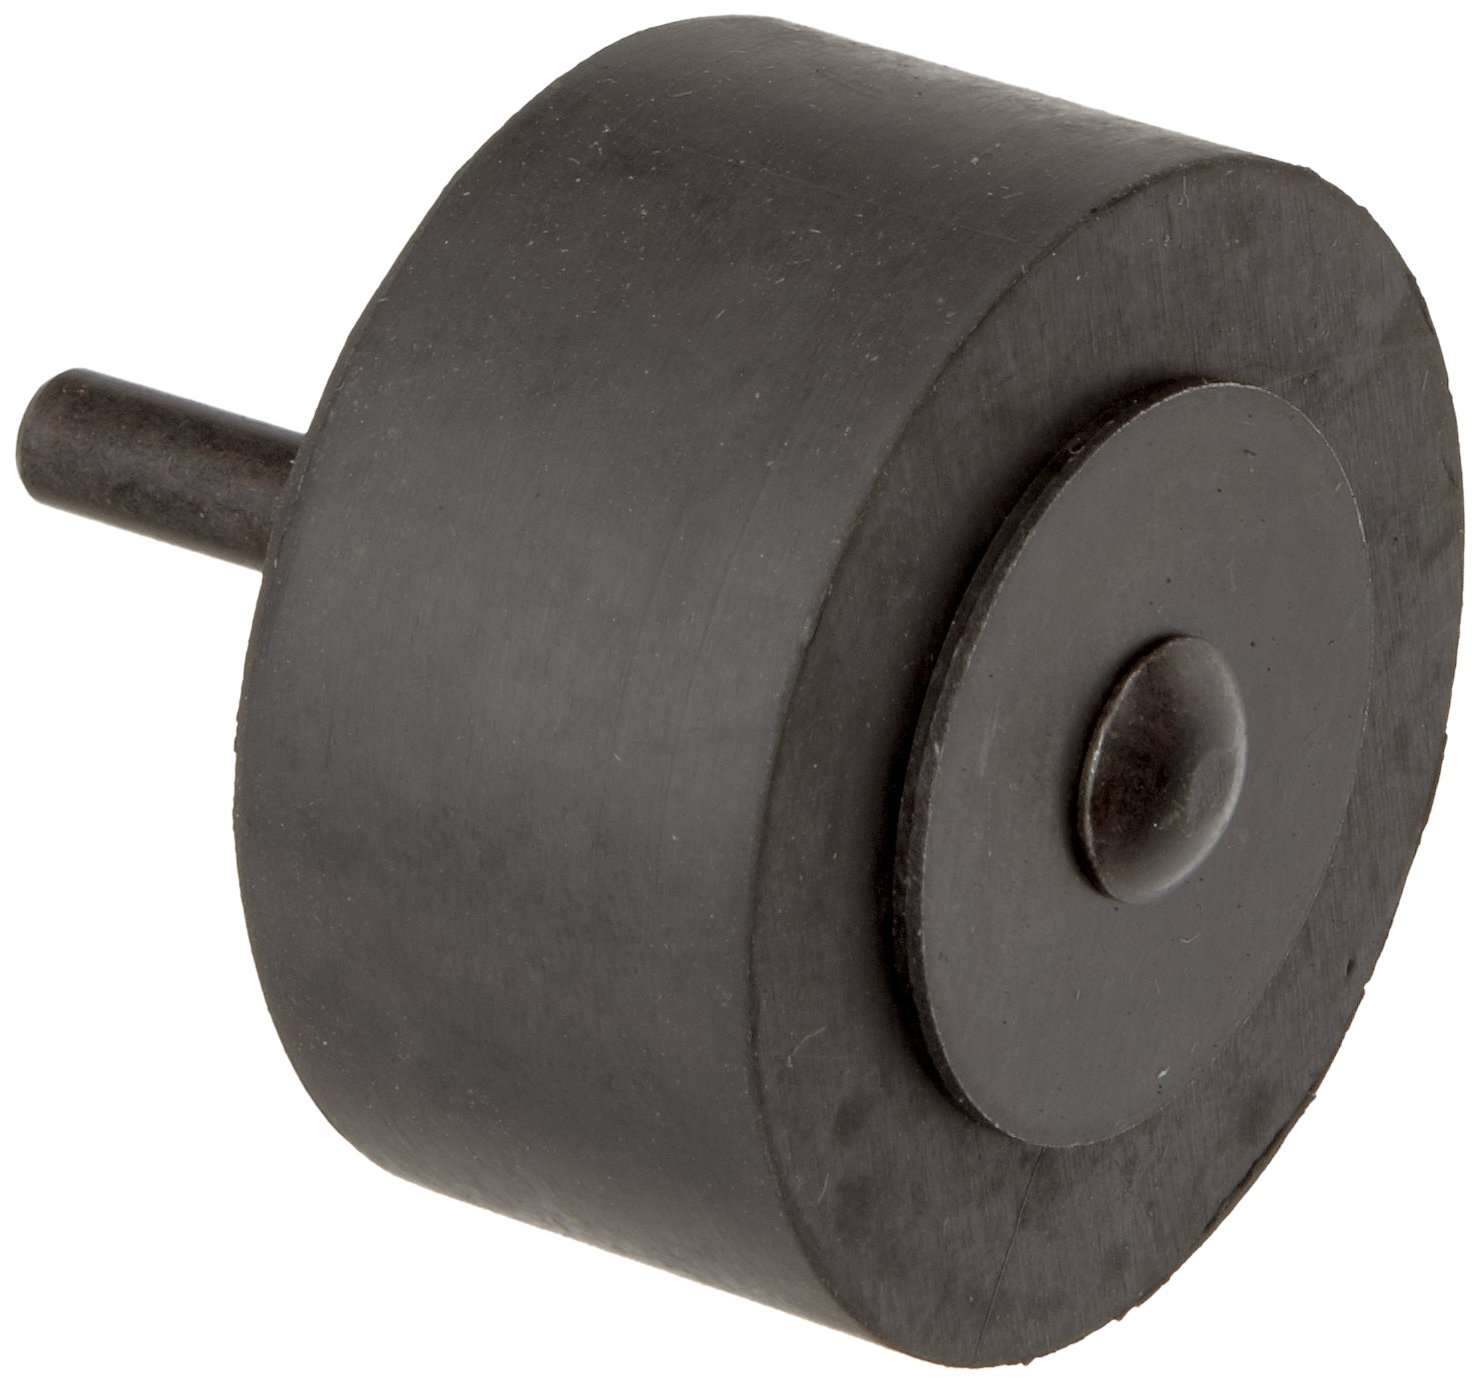 Merit Rubber Expanding Drum for Sanding Sleeves, 1/4